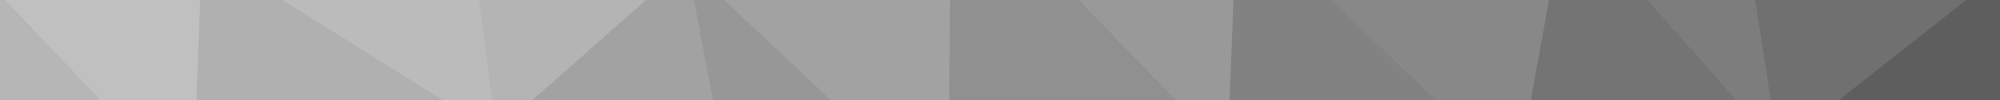 w2000 h100 Colorbrewer Greys.png